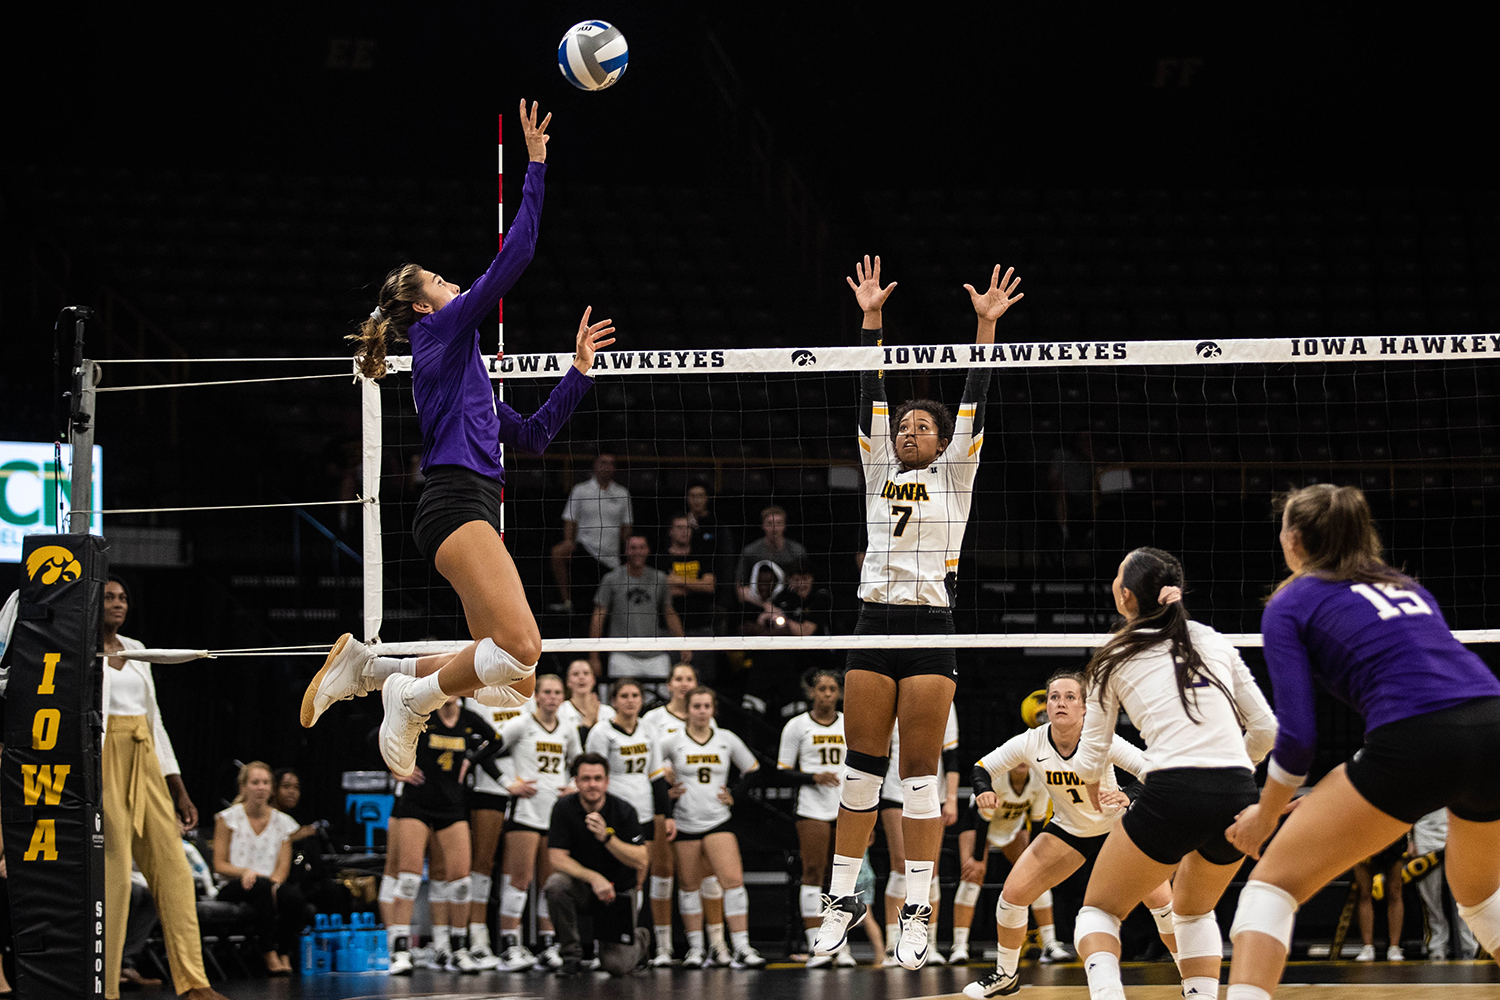 Iowa setter Brie Orr jumps to block a kill during a volleyball match between Iowa and Washington at Carver Hawkeye Arena on Saturday, September 7, 2019. The Hawkeyes were defeated by the Huskies, 3-1.